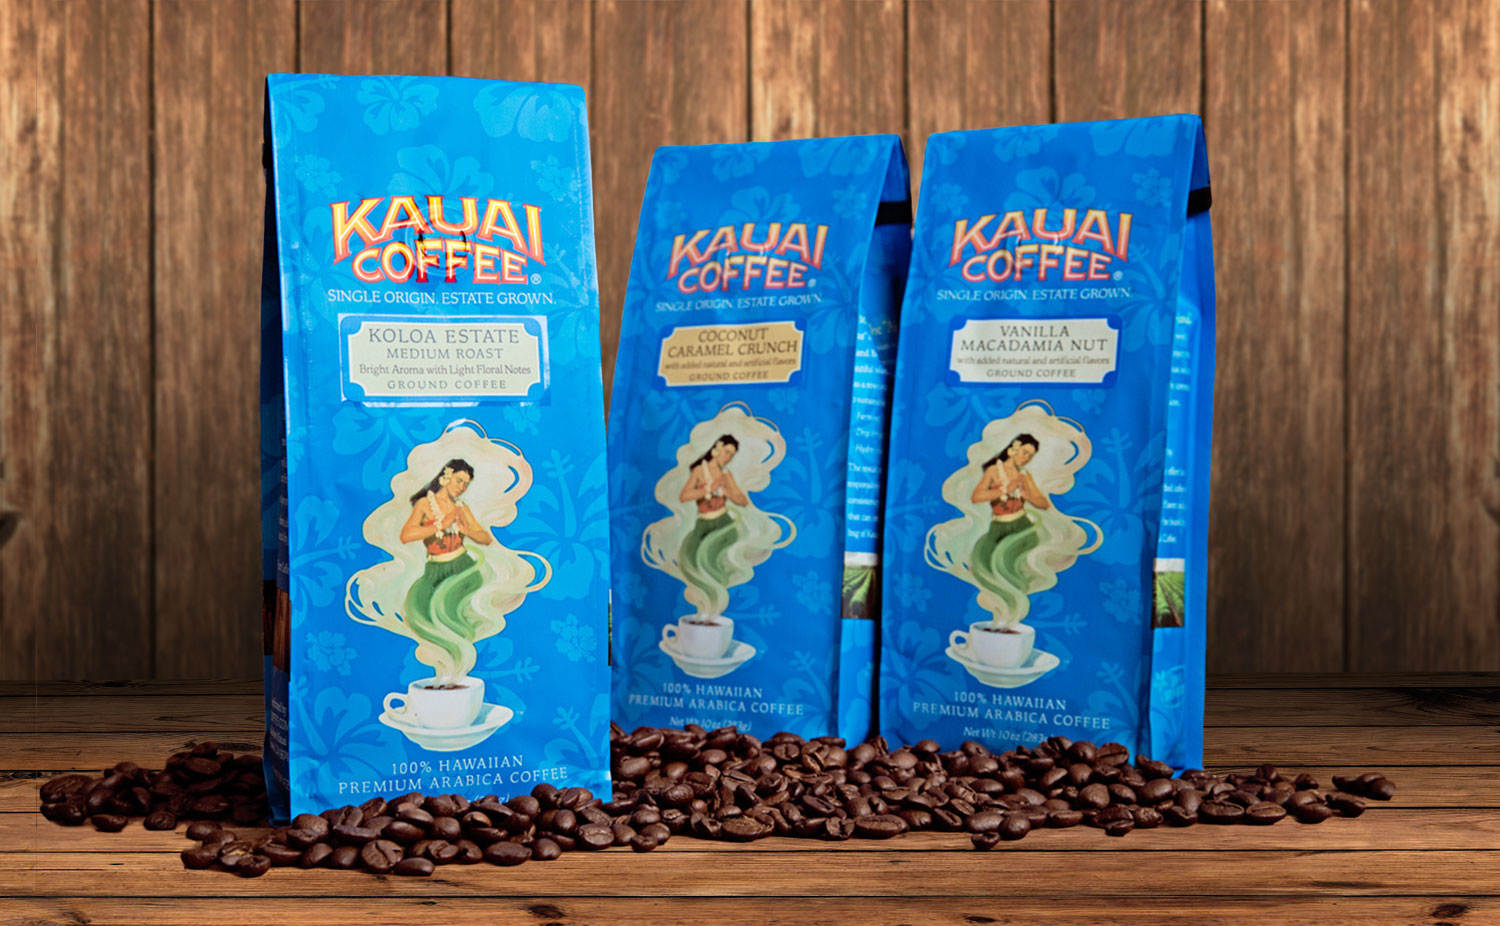 Kauai packaging - blue bags